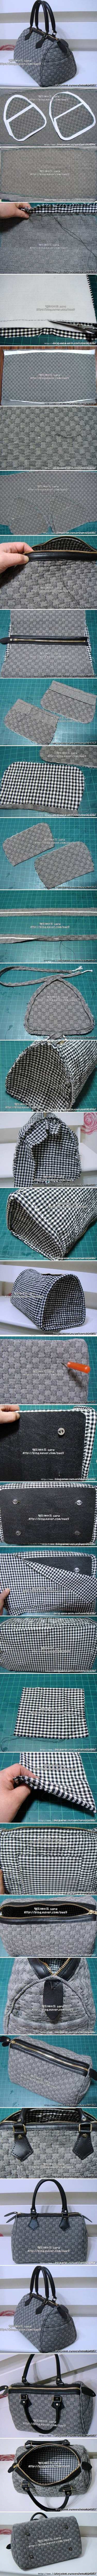 How to make Nice Fashionable designer Handbags step by step DIY tutorial instructions